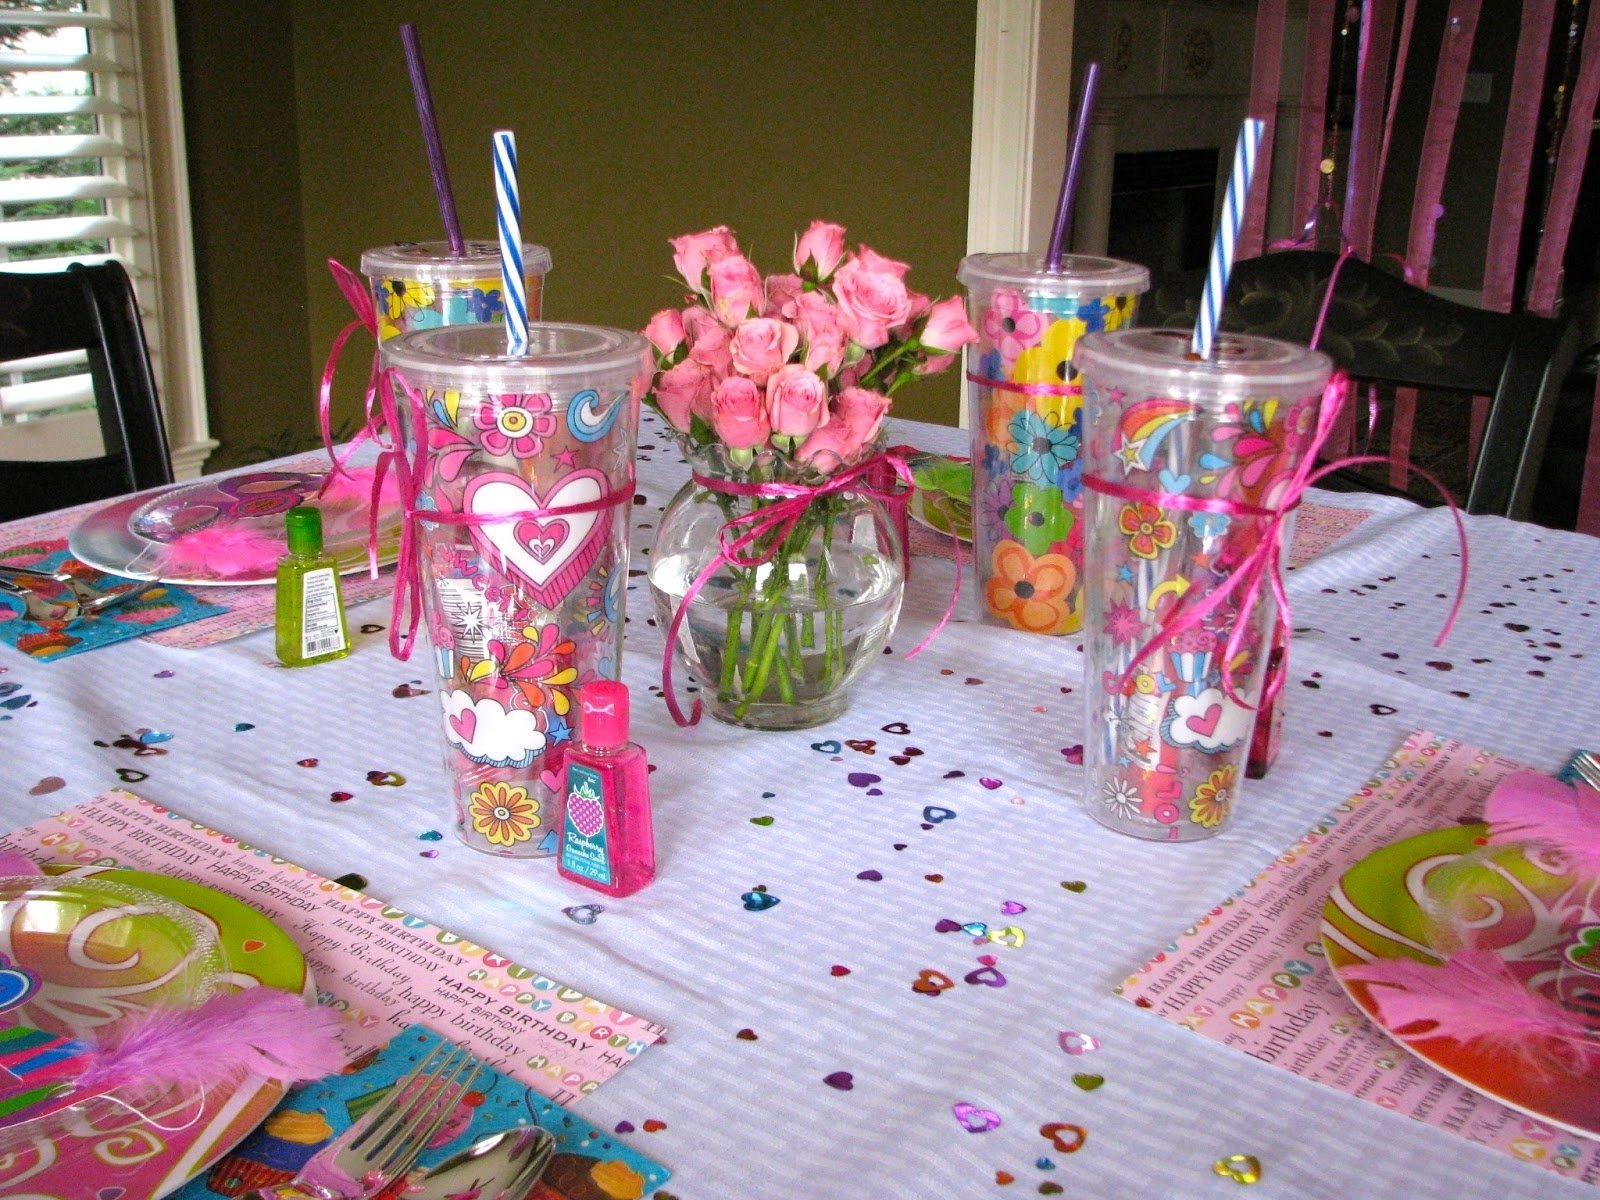 10 Wonderful Birthday Party Ideas For Little Girls homemadeville your place for homemade inspiration girls birthday 3 2020